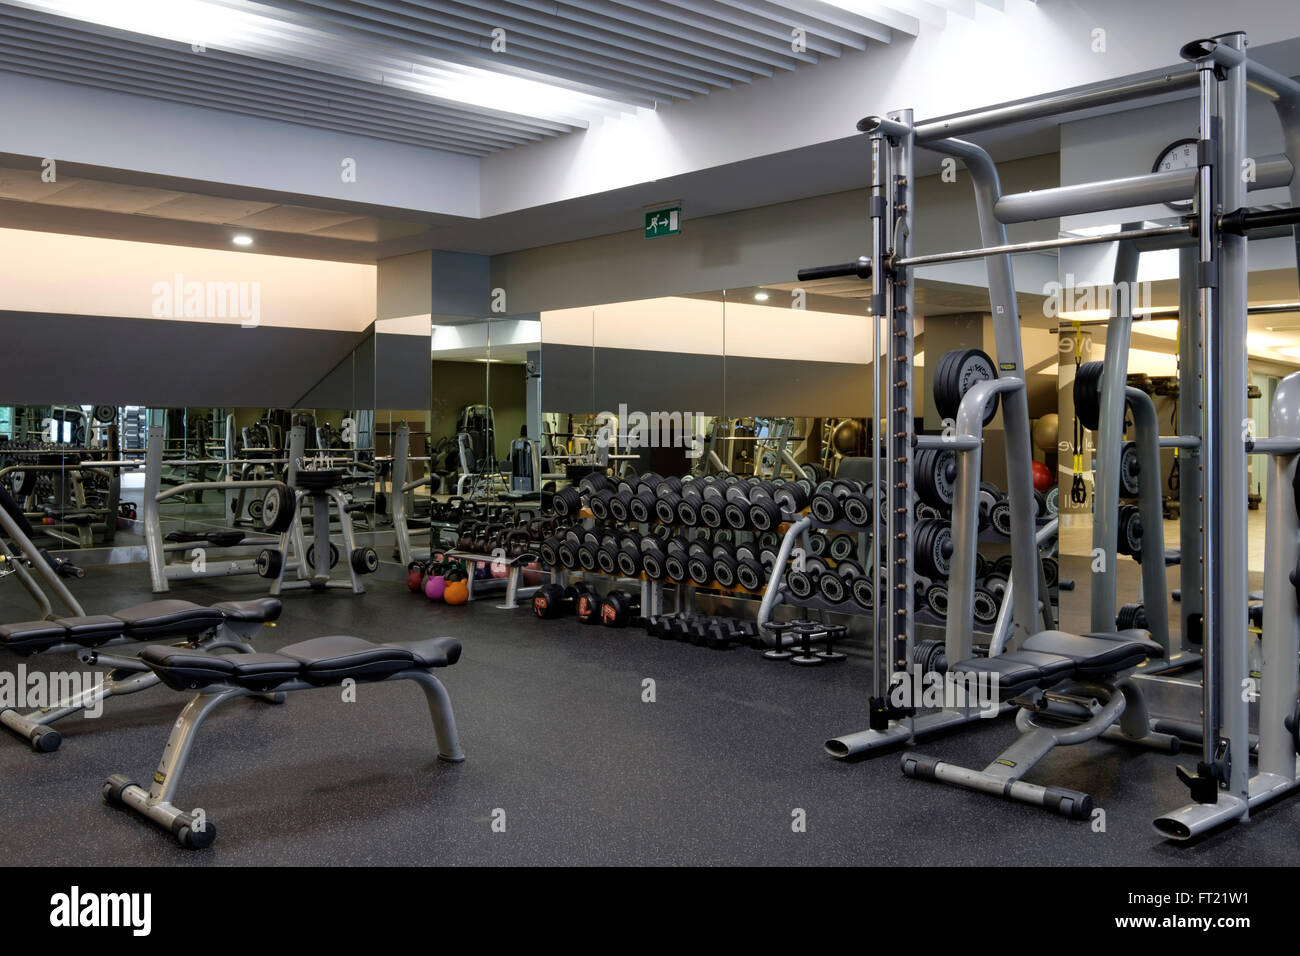 Weight lifting stations at an empty gym stock photo